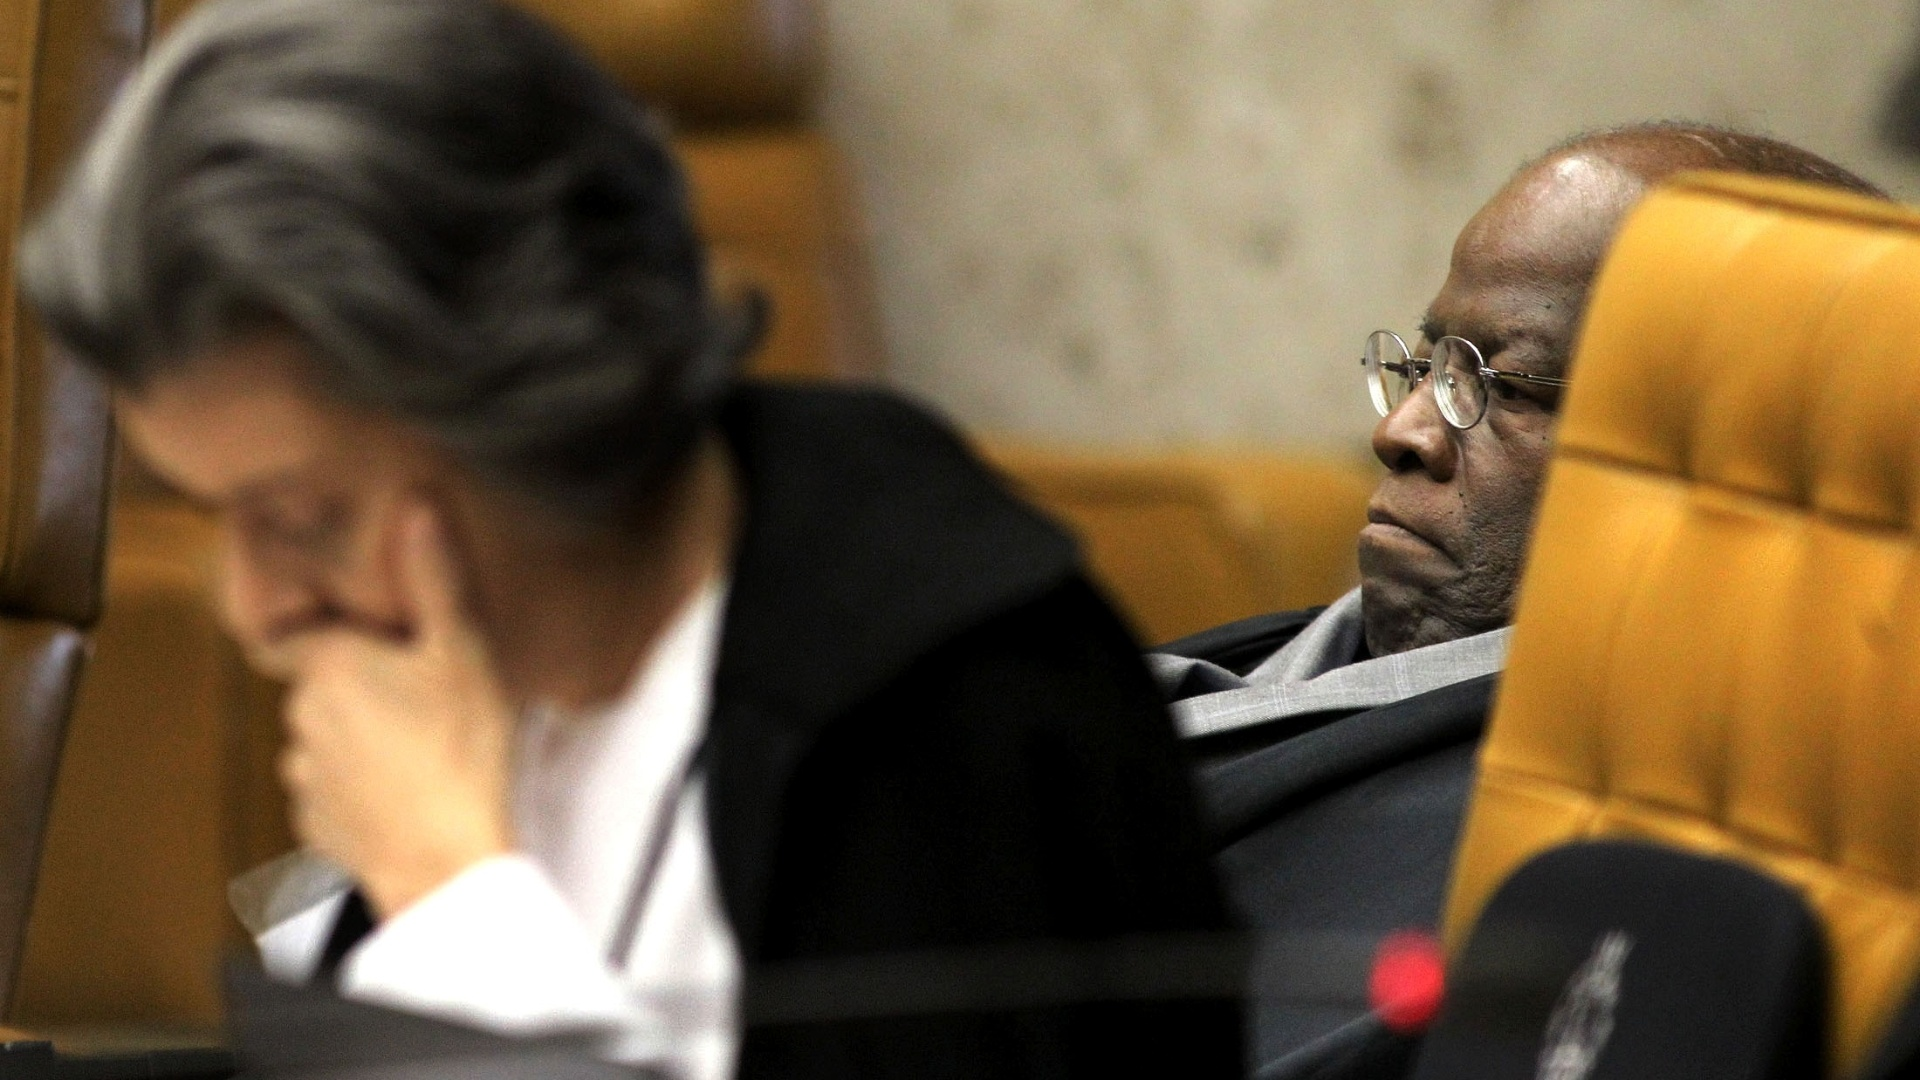 9.out.2012 - Ministro Joaquim Barbosa e Carmen Lcia no plenrio do Supremo Tribunal Federal (STF) durante julgamento do mensalo